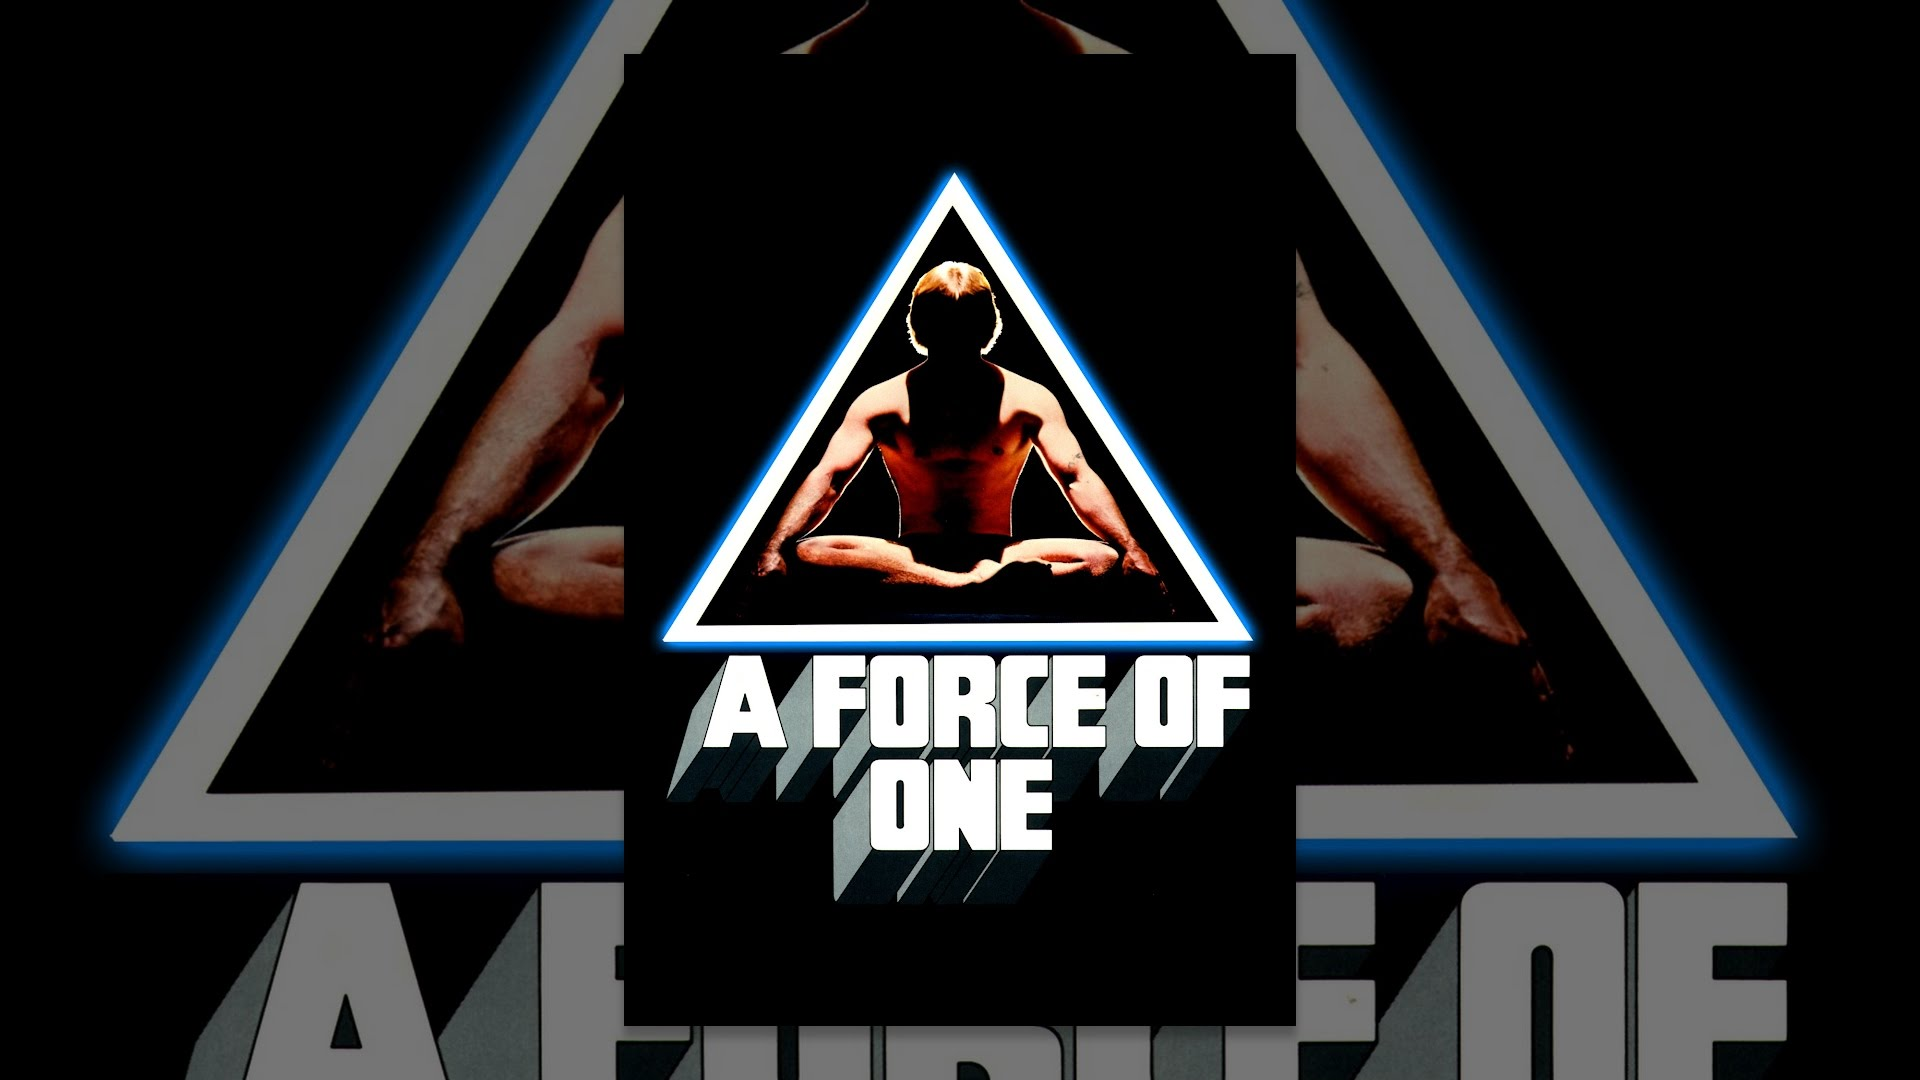 Download A Force Of One